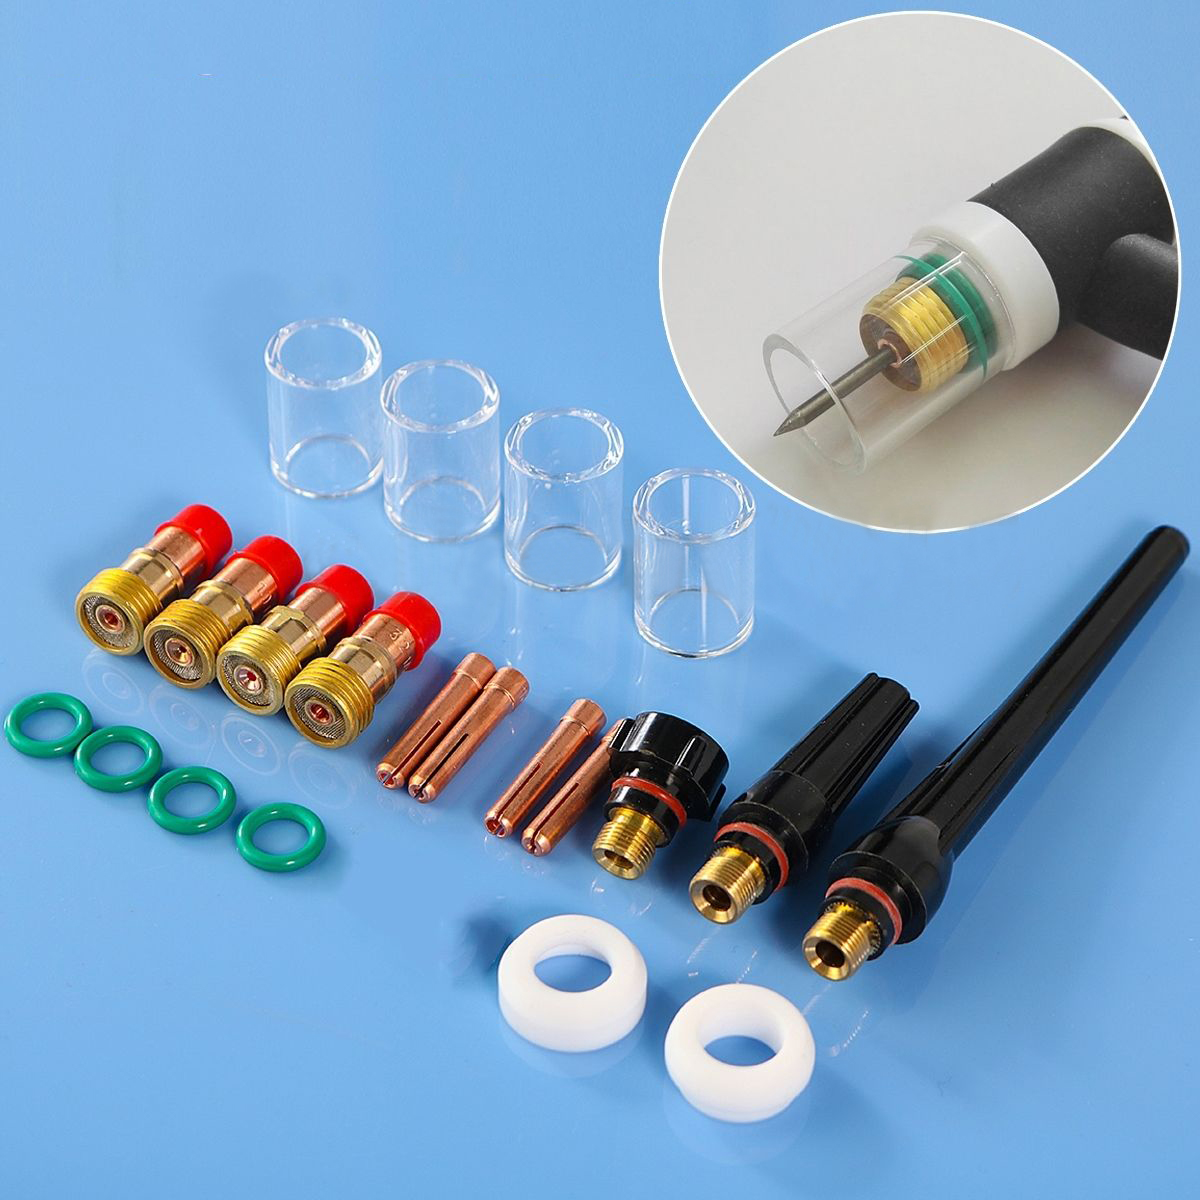 21pcs Mayitr TIG Welding Torch Kit Sollets Body Stubby Gas Lens #10 Pyrex Cup for WP-17/18/26 Torch Consumables Accessories wp 17f sr 17f tig welding torch complete 17feet 5meter soldering iron flexible